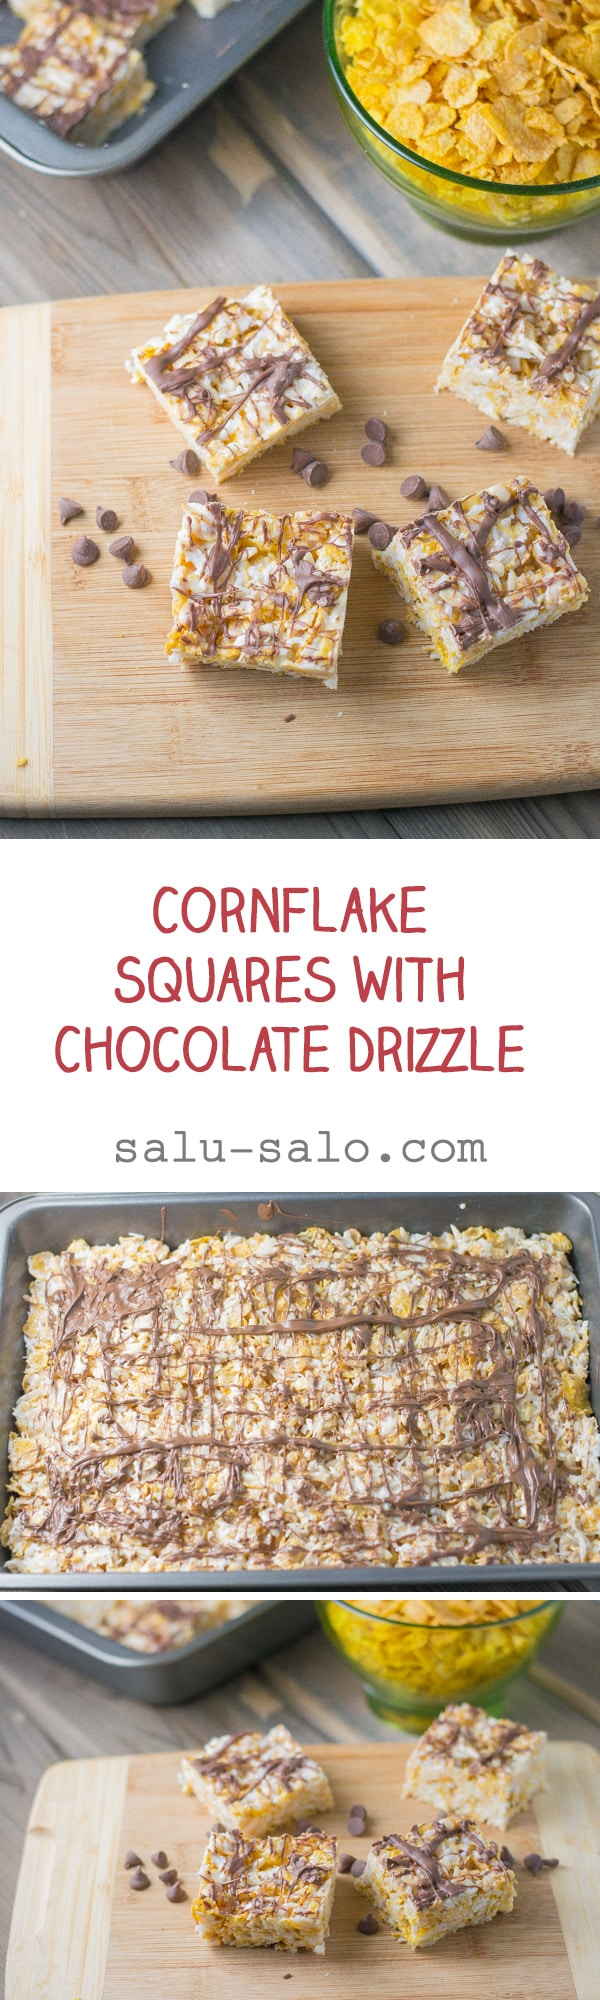 Cornflake Squares with Chocolate Drizzle